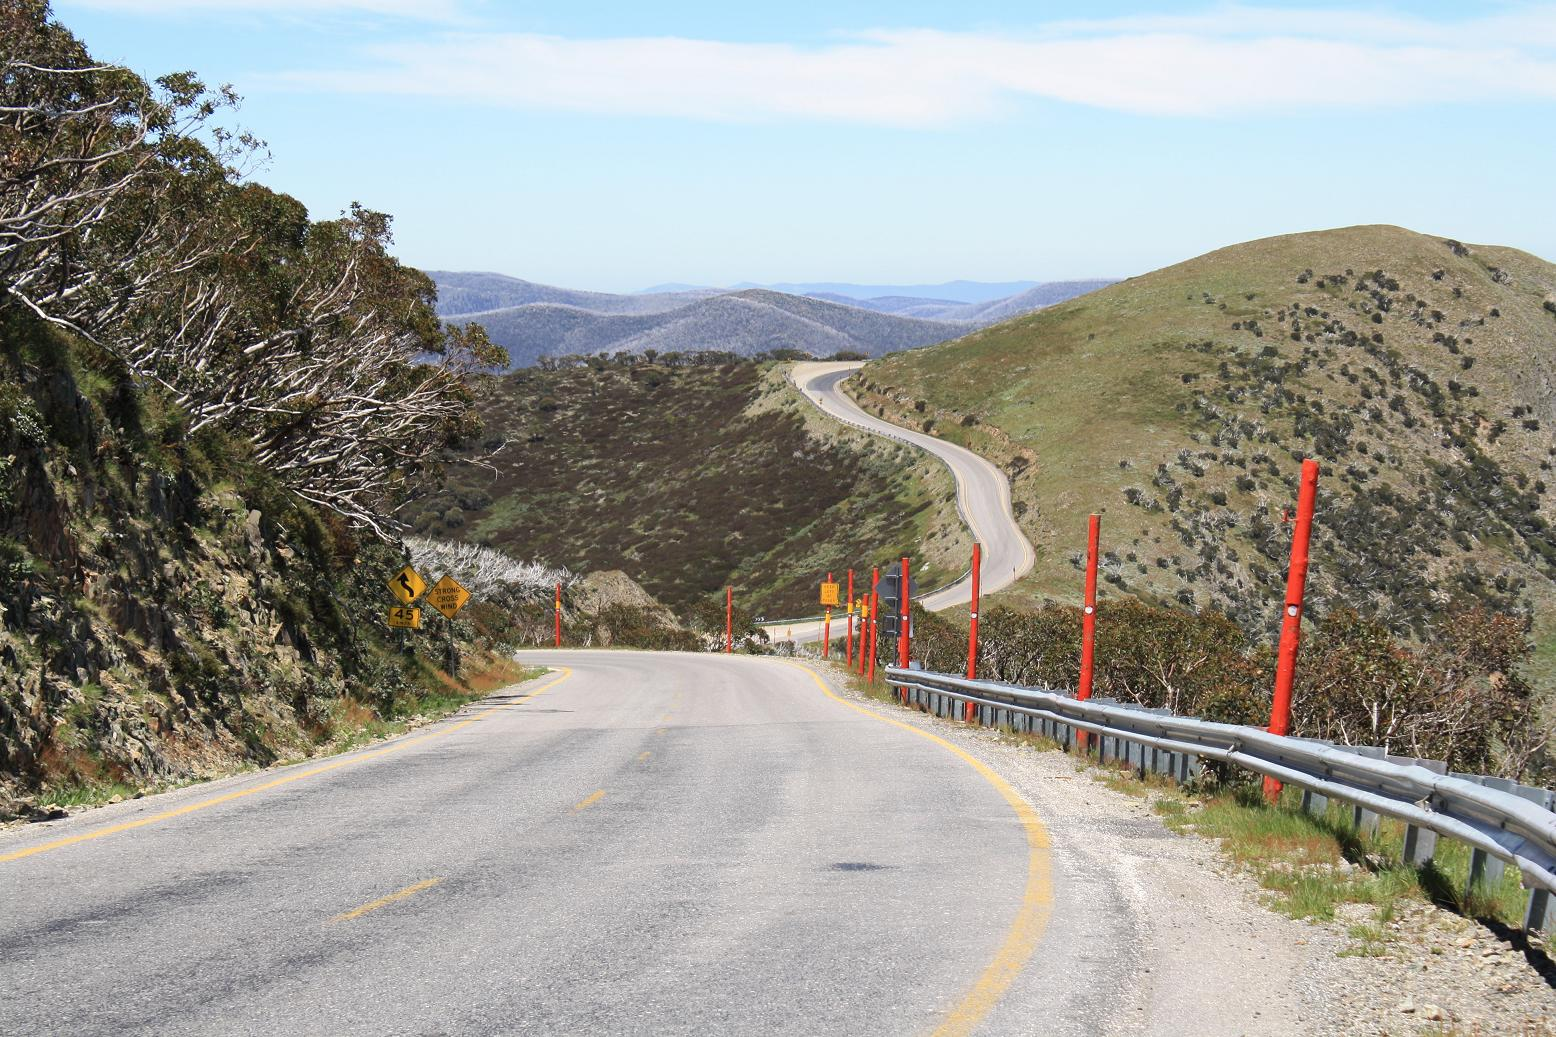 Looking down the Mt. Hotham climb